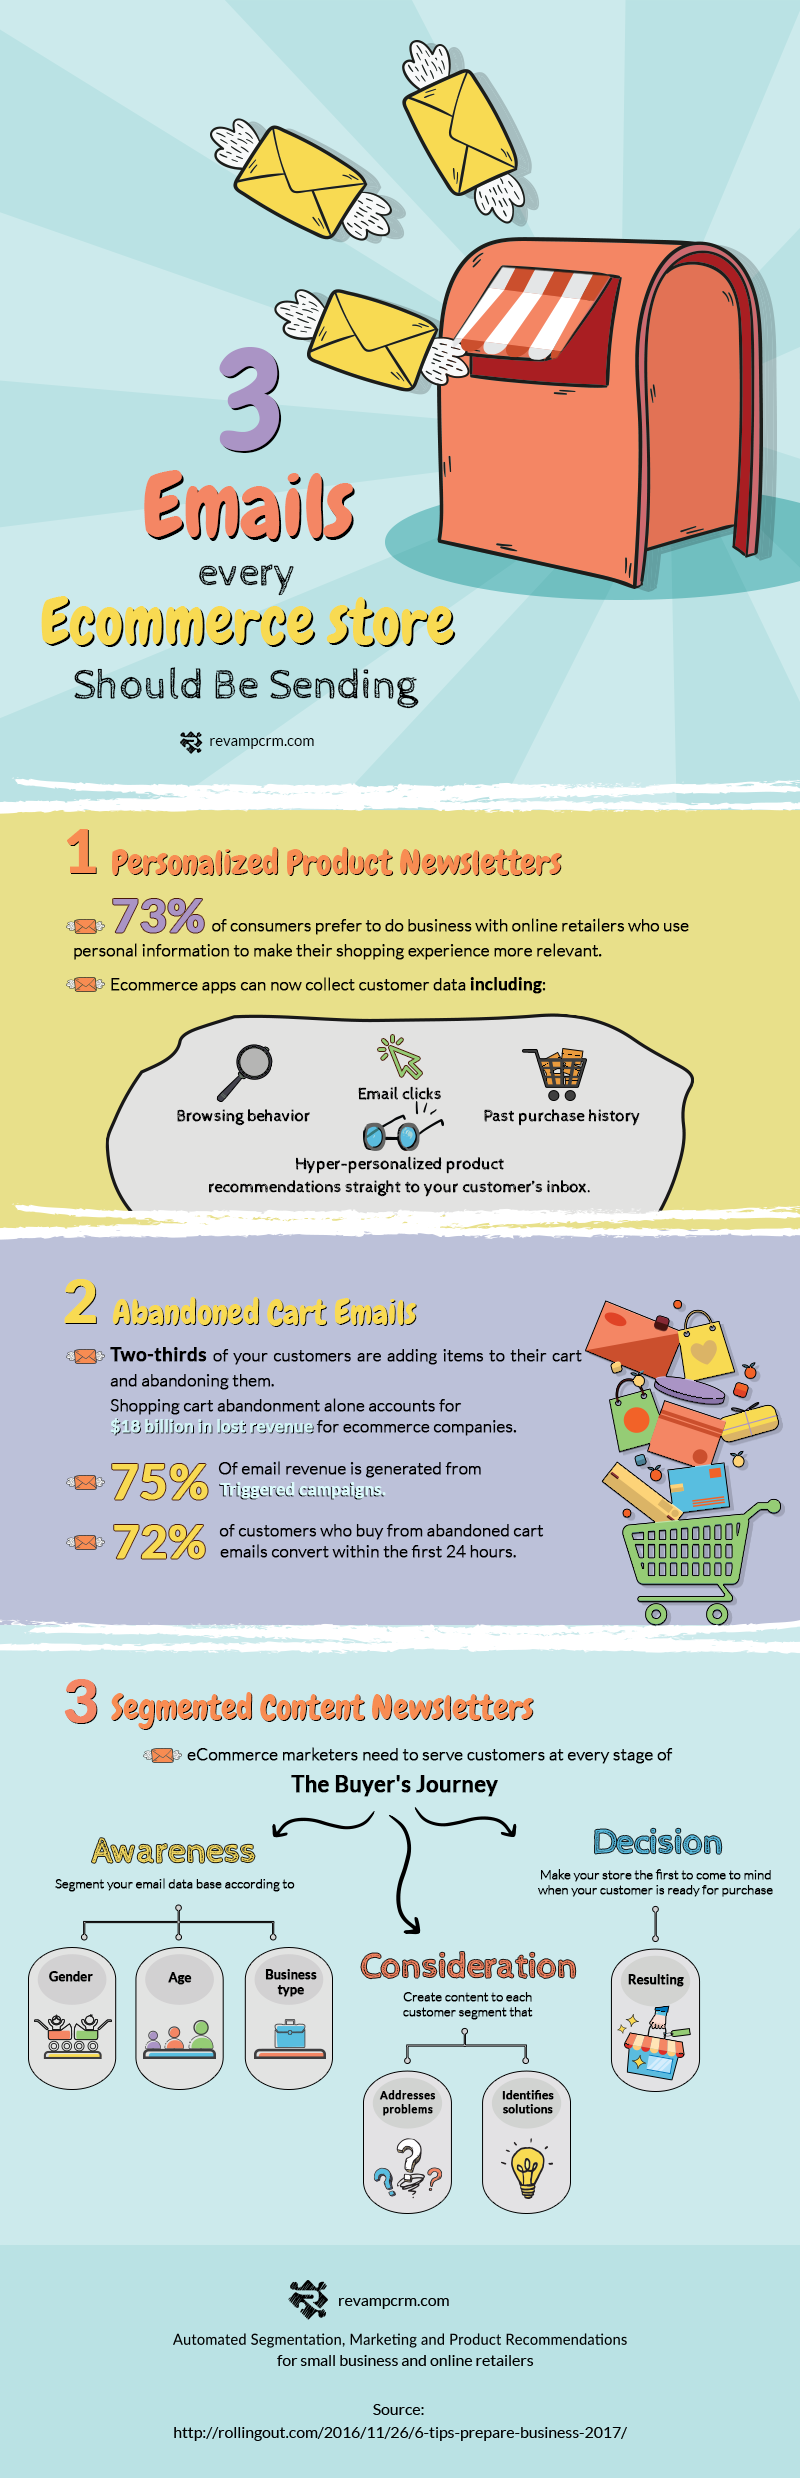 3 Important Emails Your eCommerce Store Should Be Sending